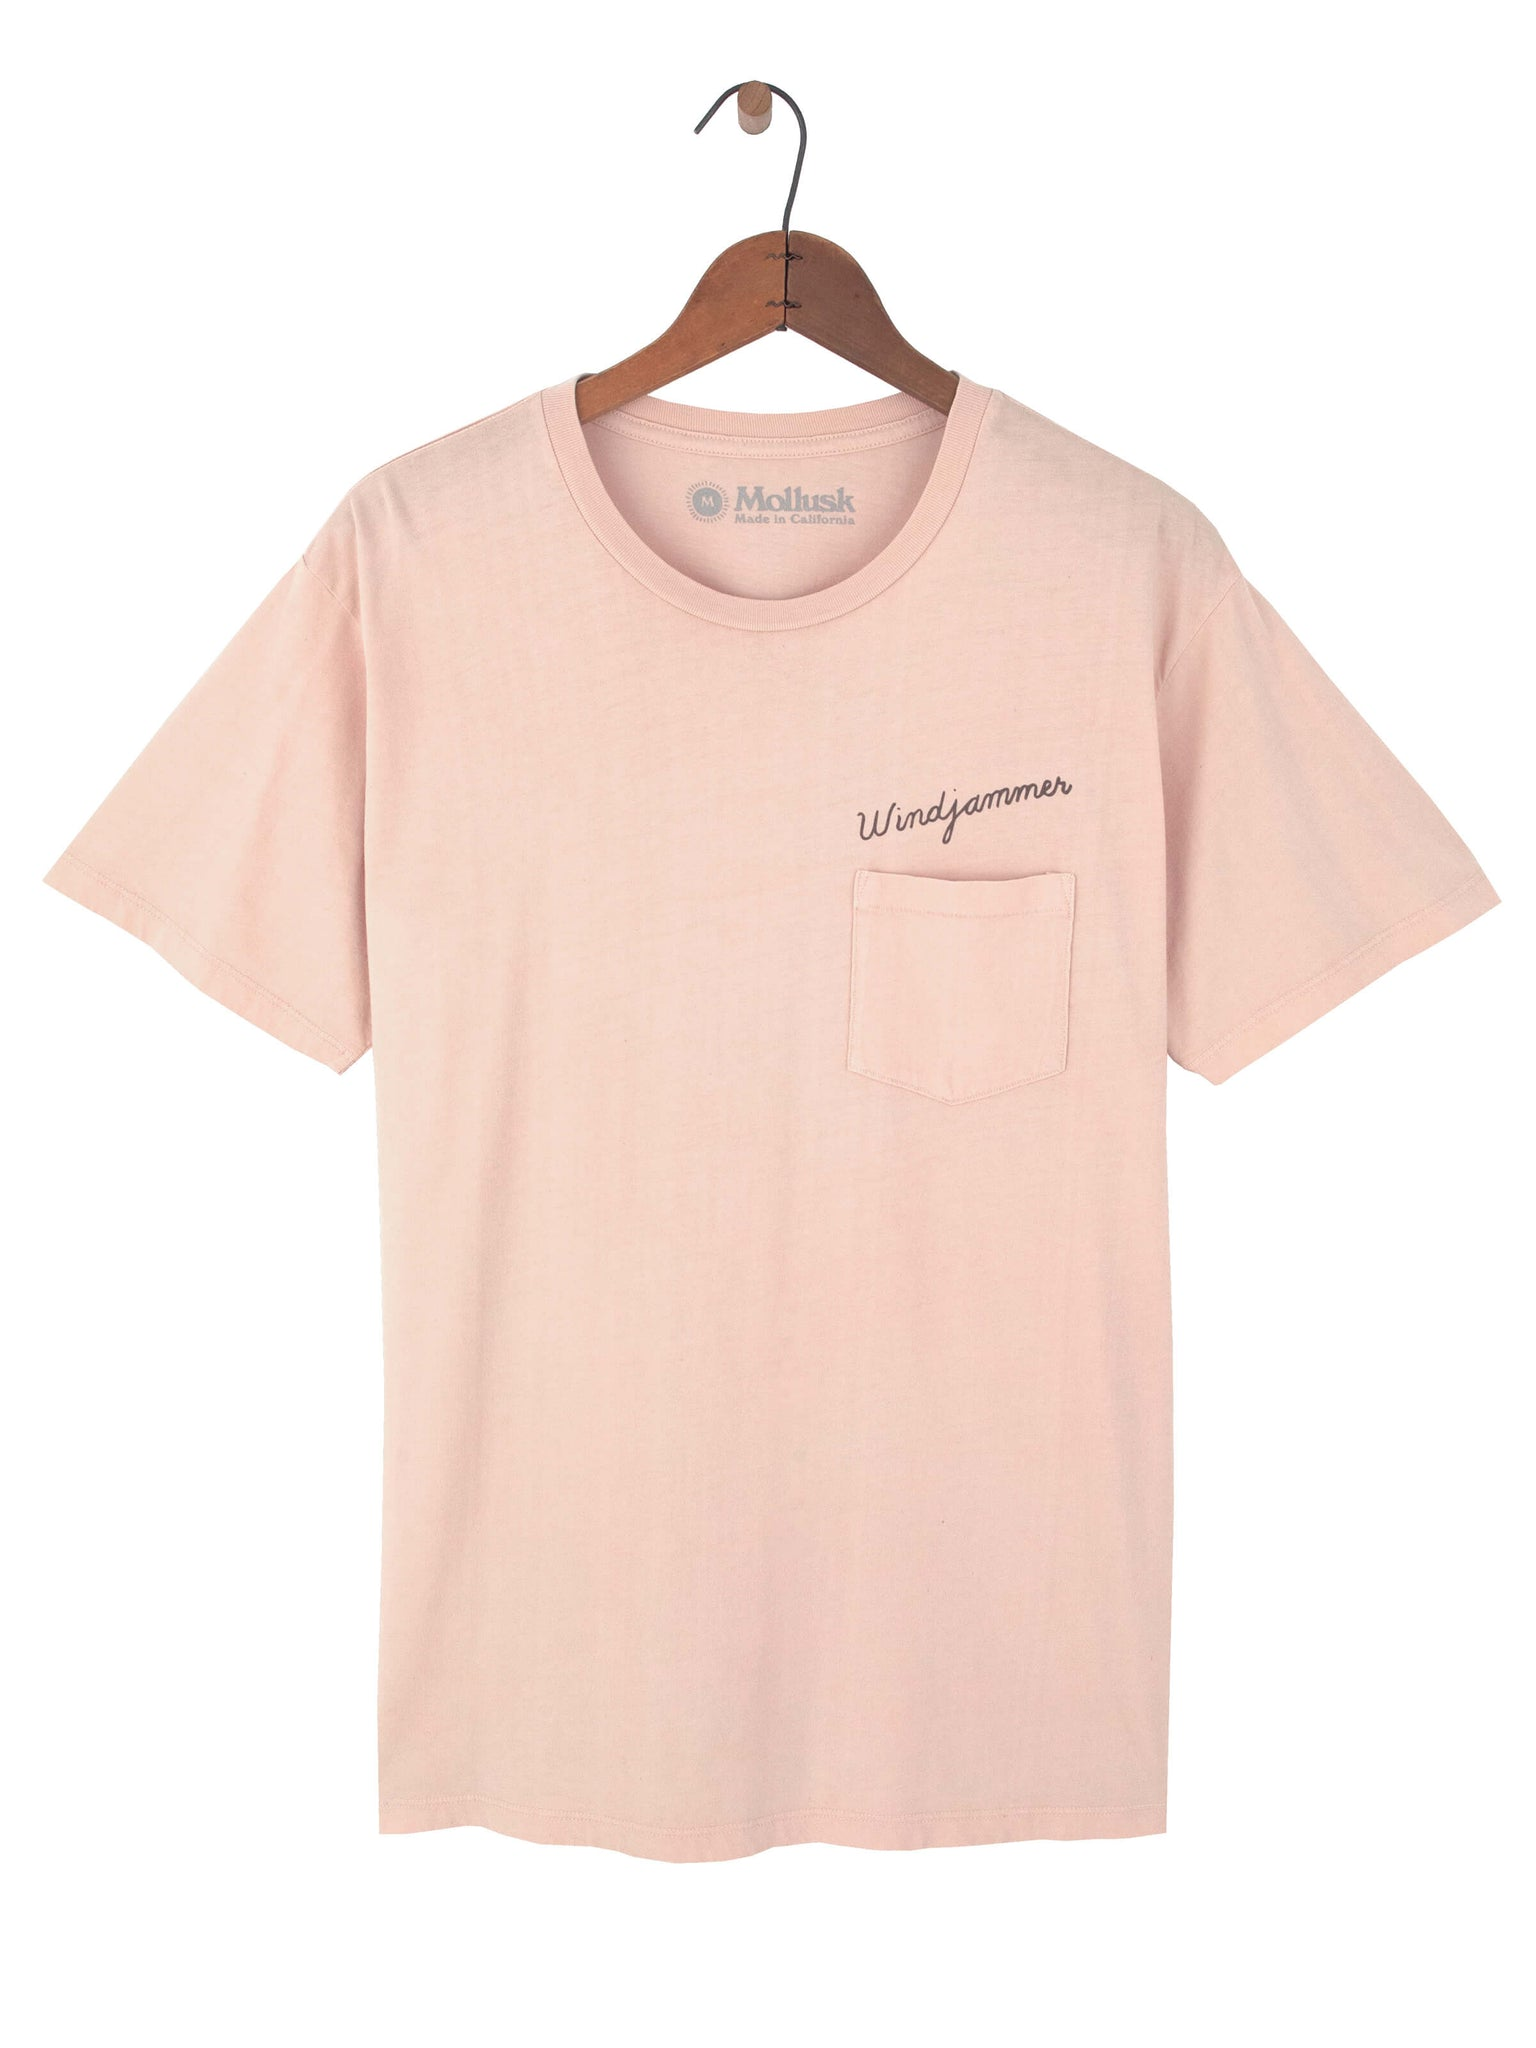 Windjammer Tee